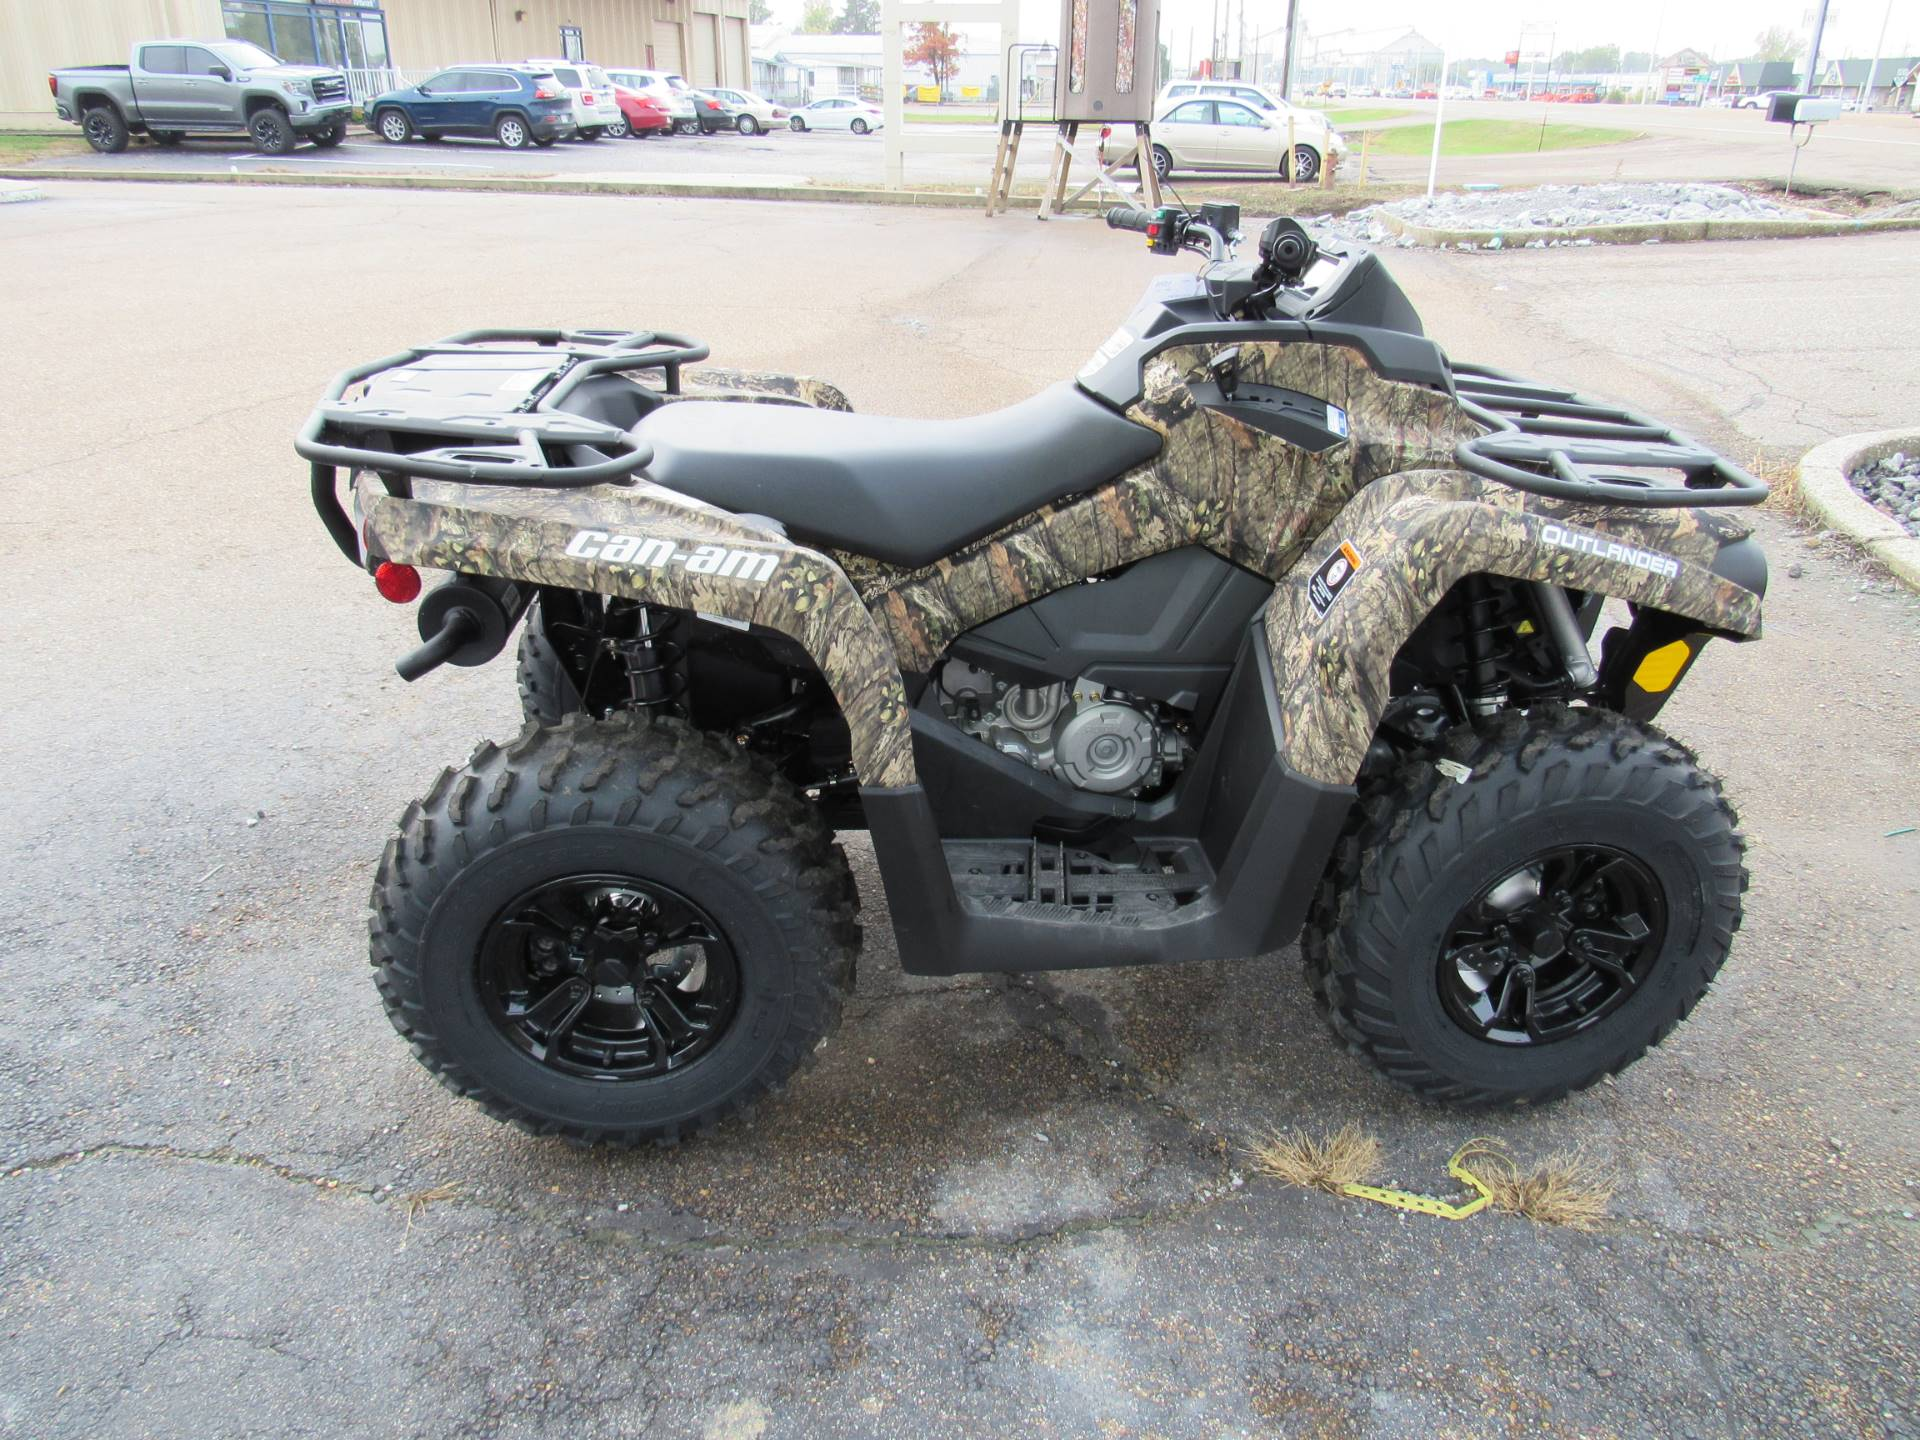 2021 Can-Am Outlander DPS 450 in Dyersburg, Tennessee - Photo 4